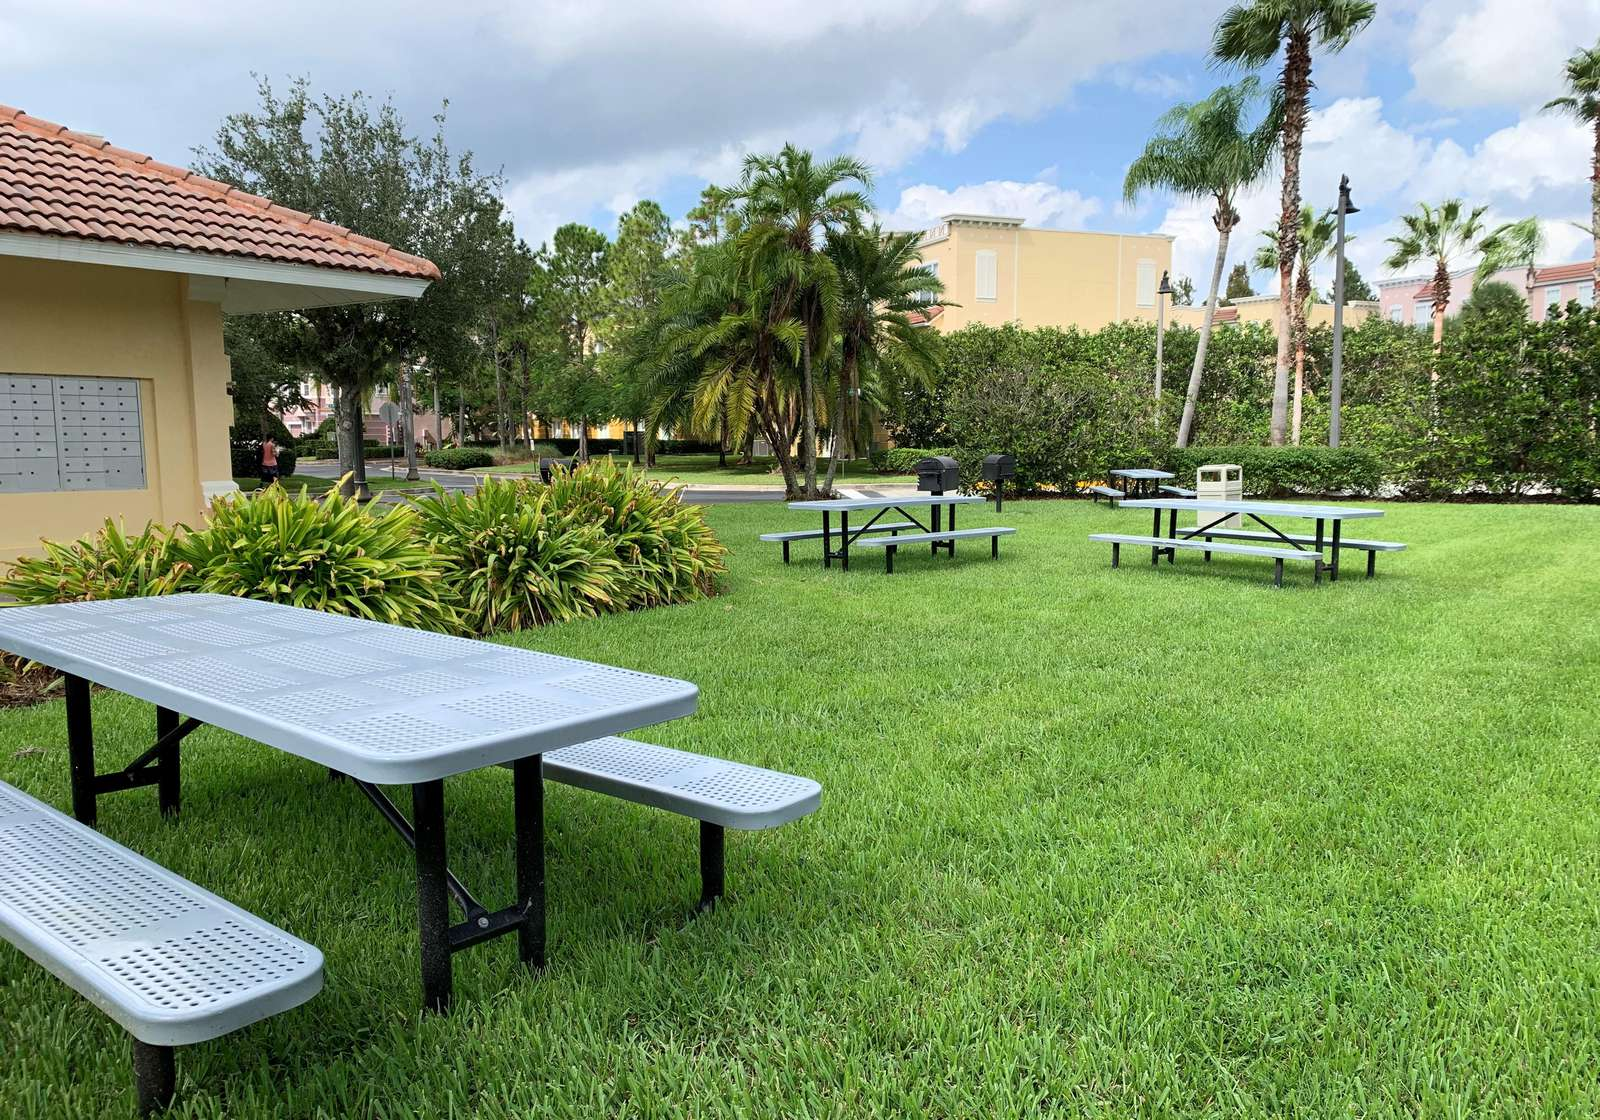 Picnic area and grills